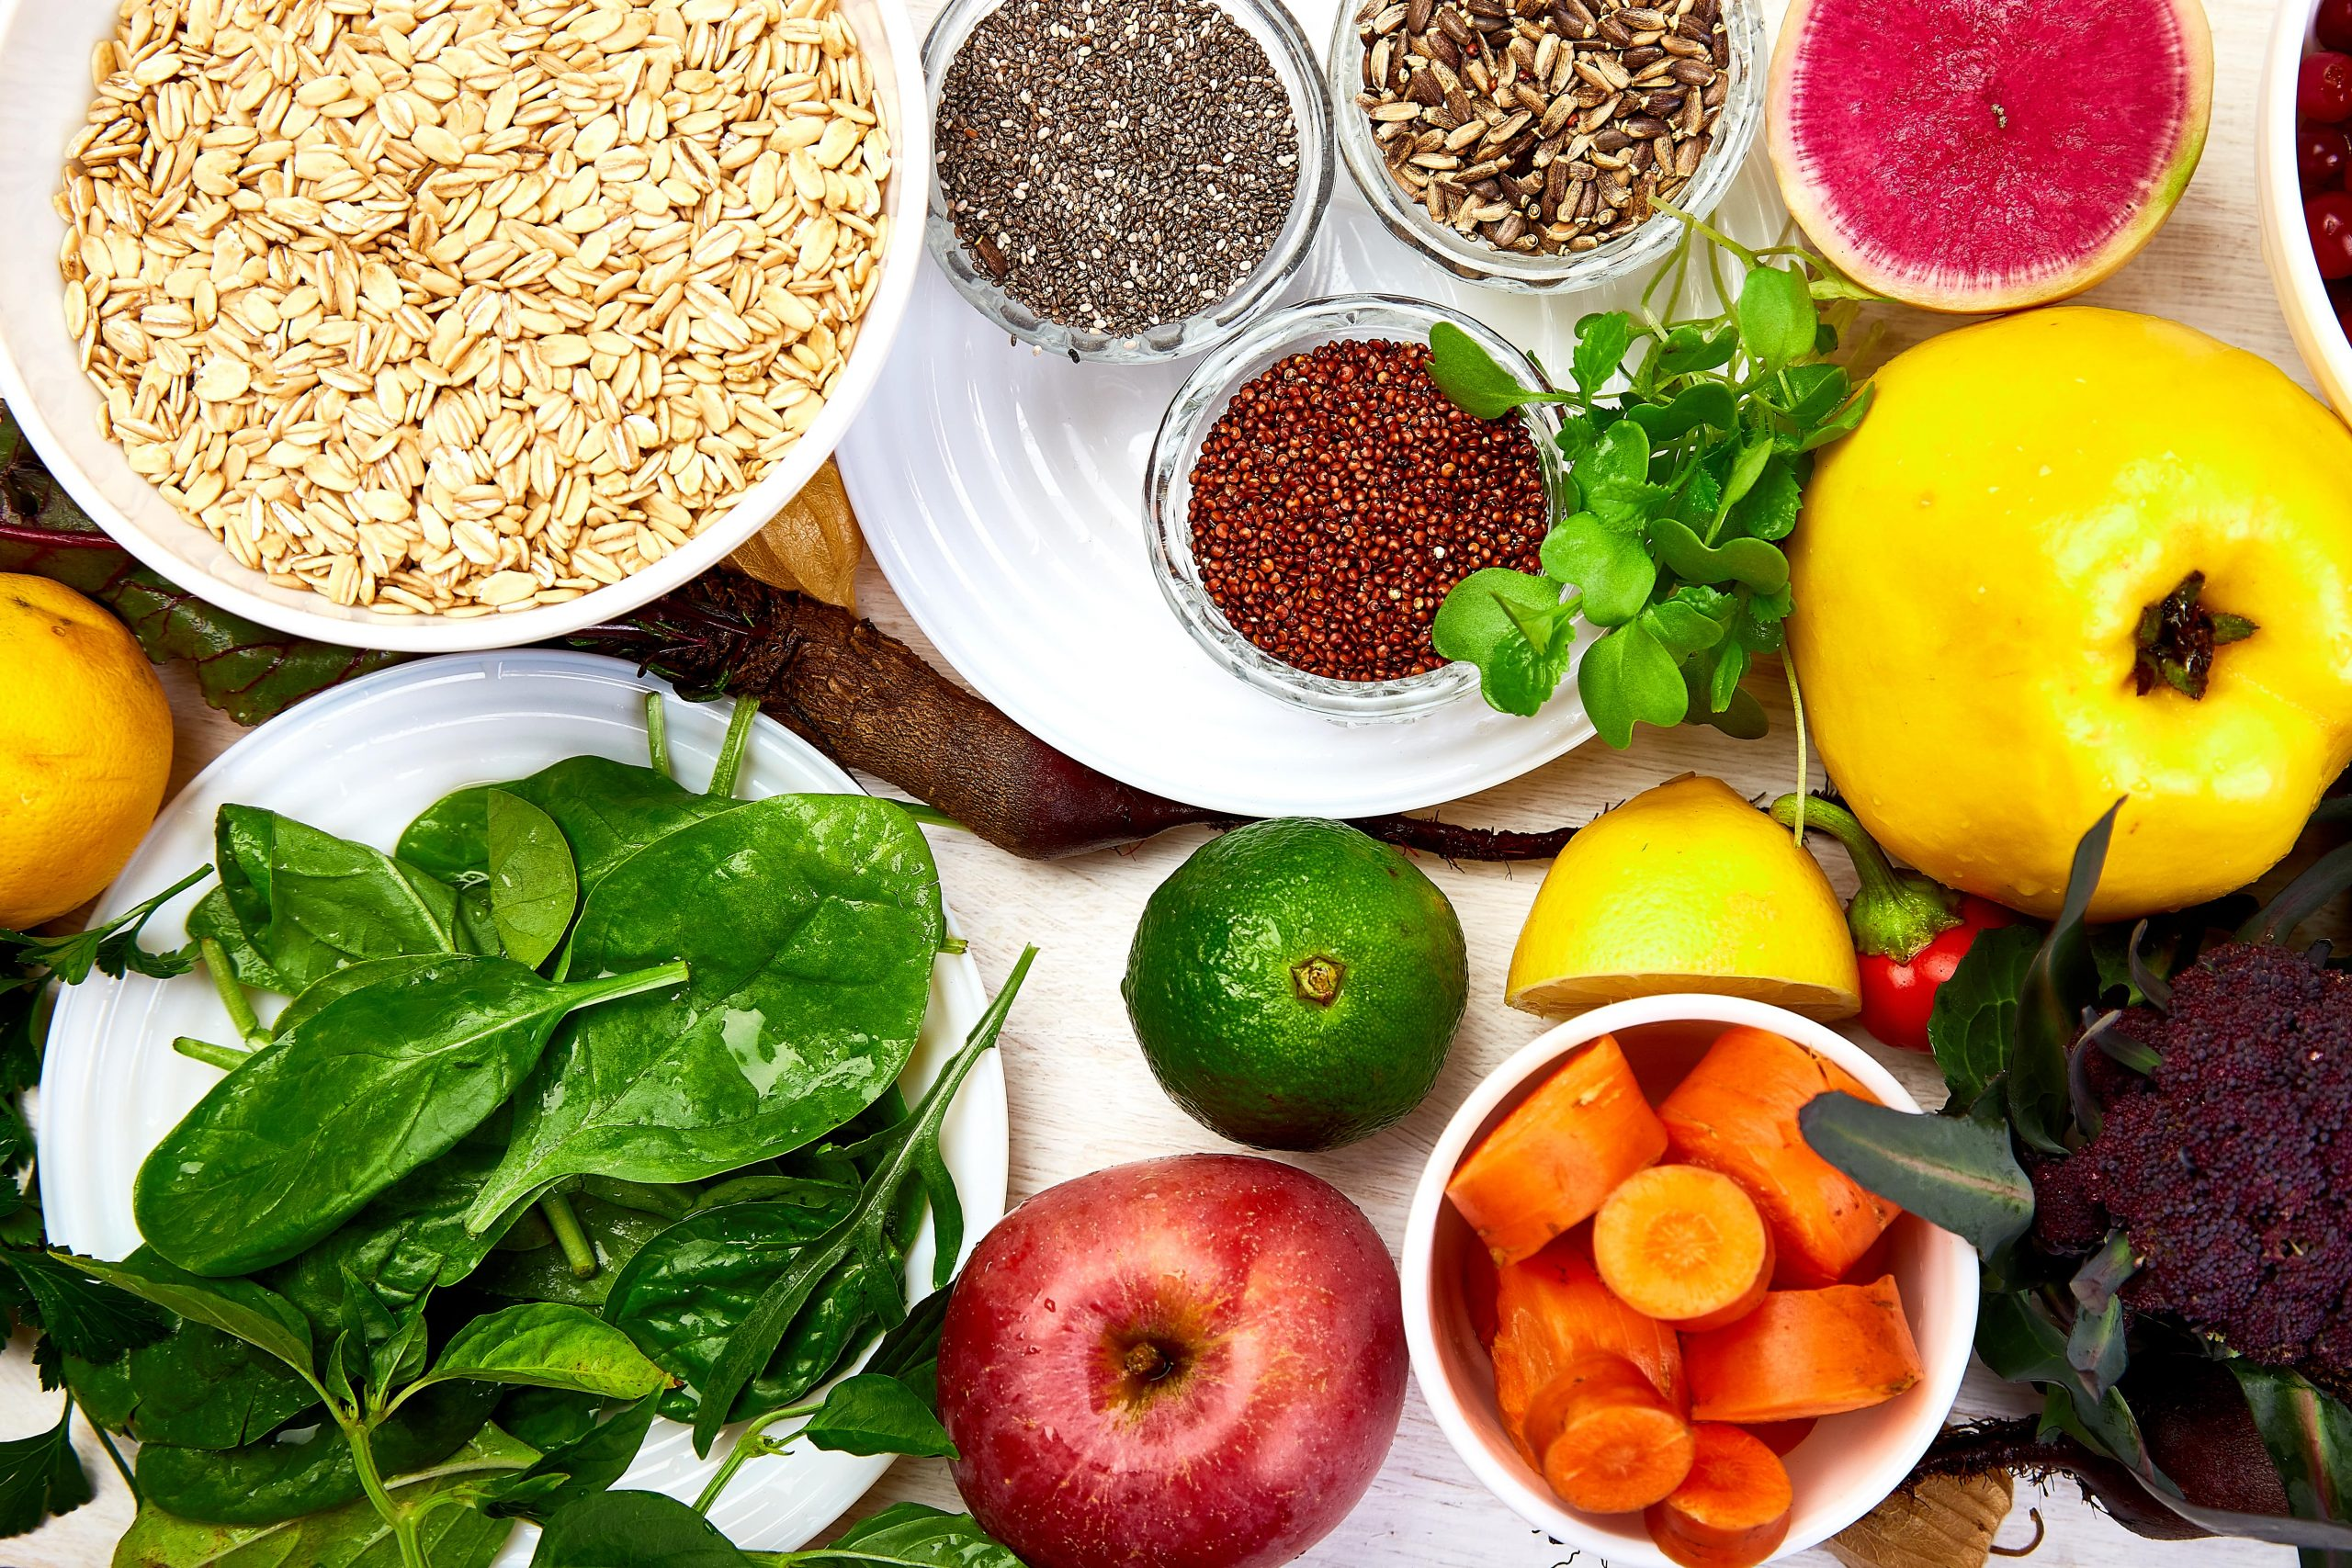 Table of whole grains, leafy greens, and legumes. Foods to alleviate the symptoms of PCOS